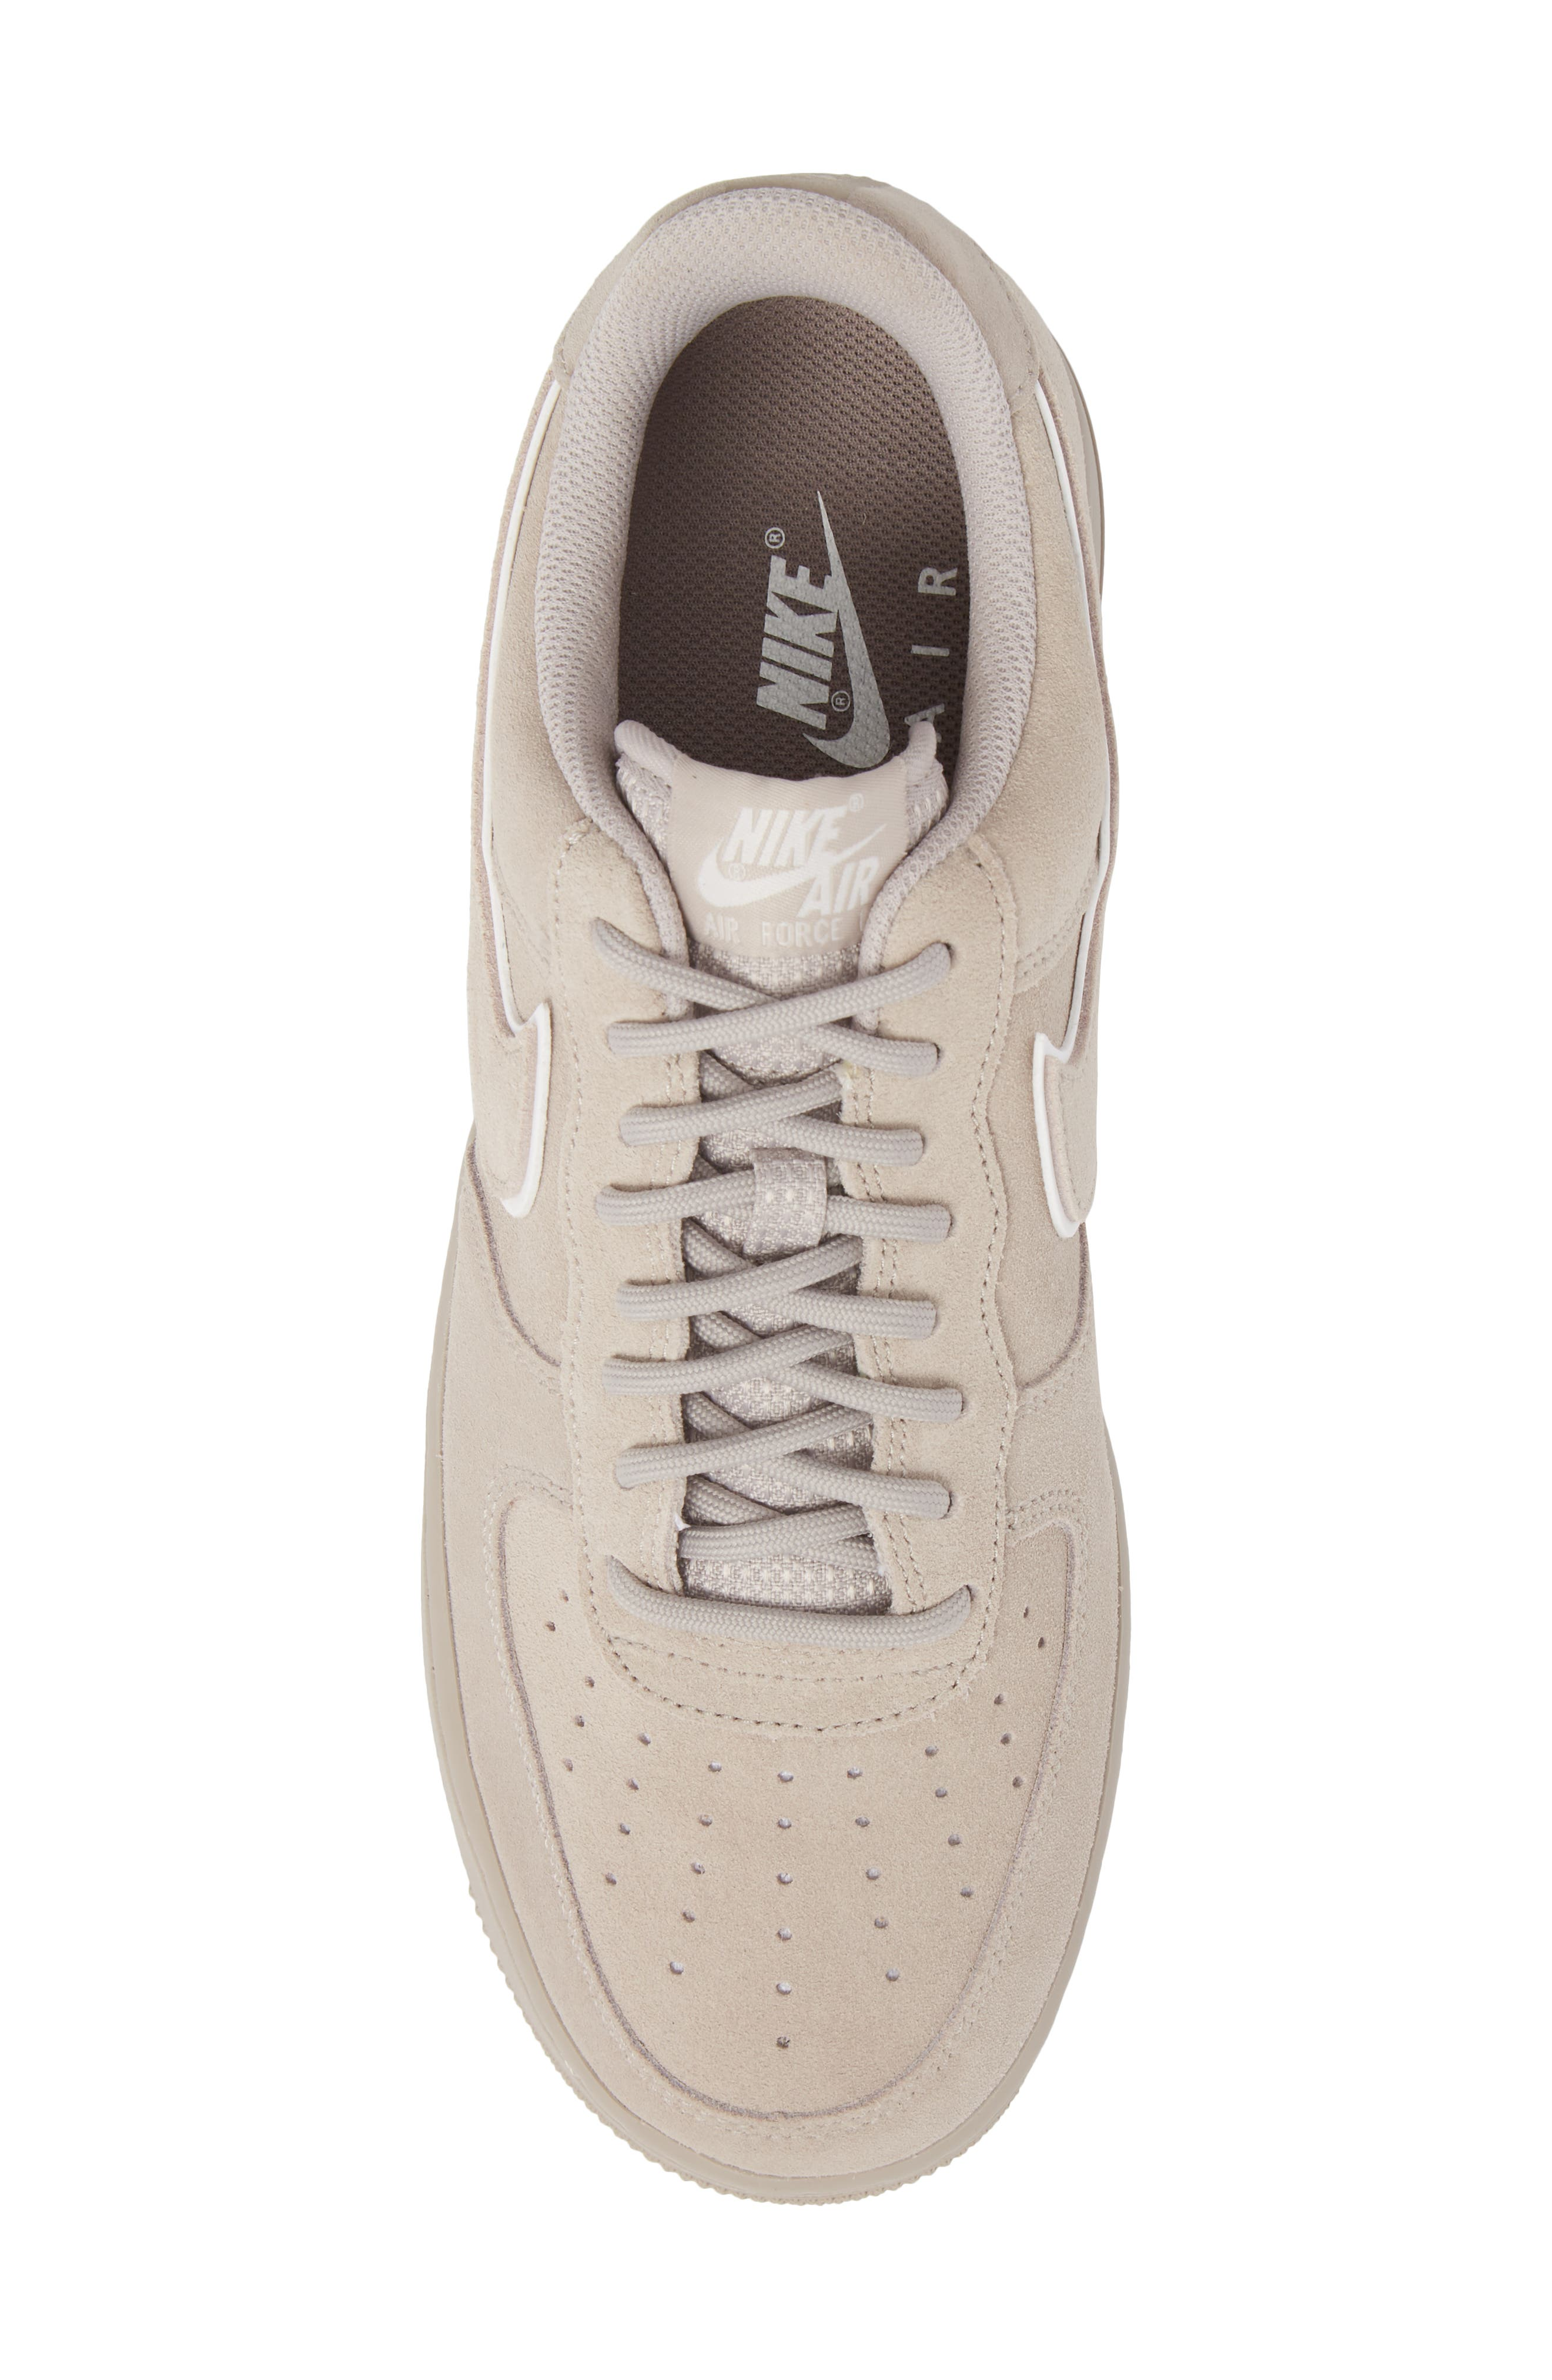 Air Force 1 '07 Low LV8 Sneaker,                             Alternate thumbnail 5, color,                             Moon Particle/ Sepia Stone